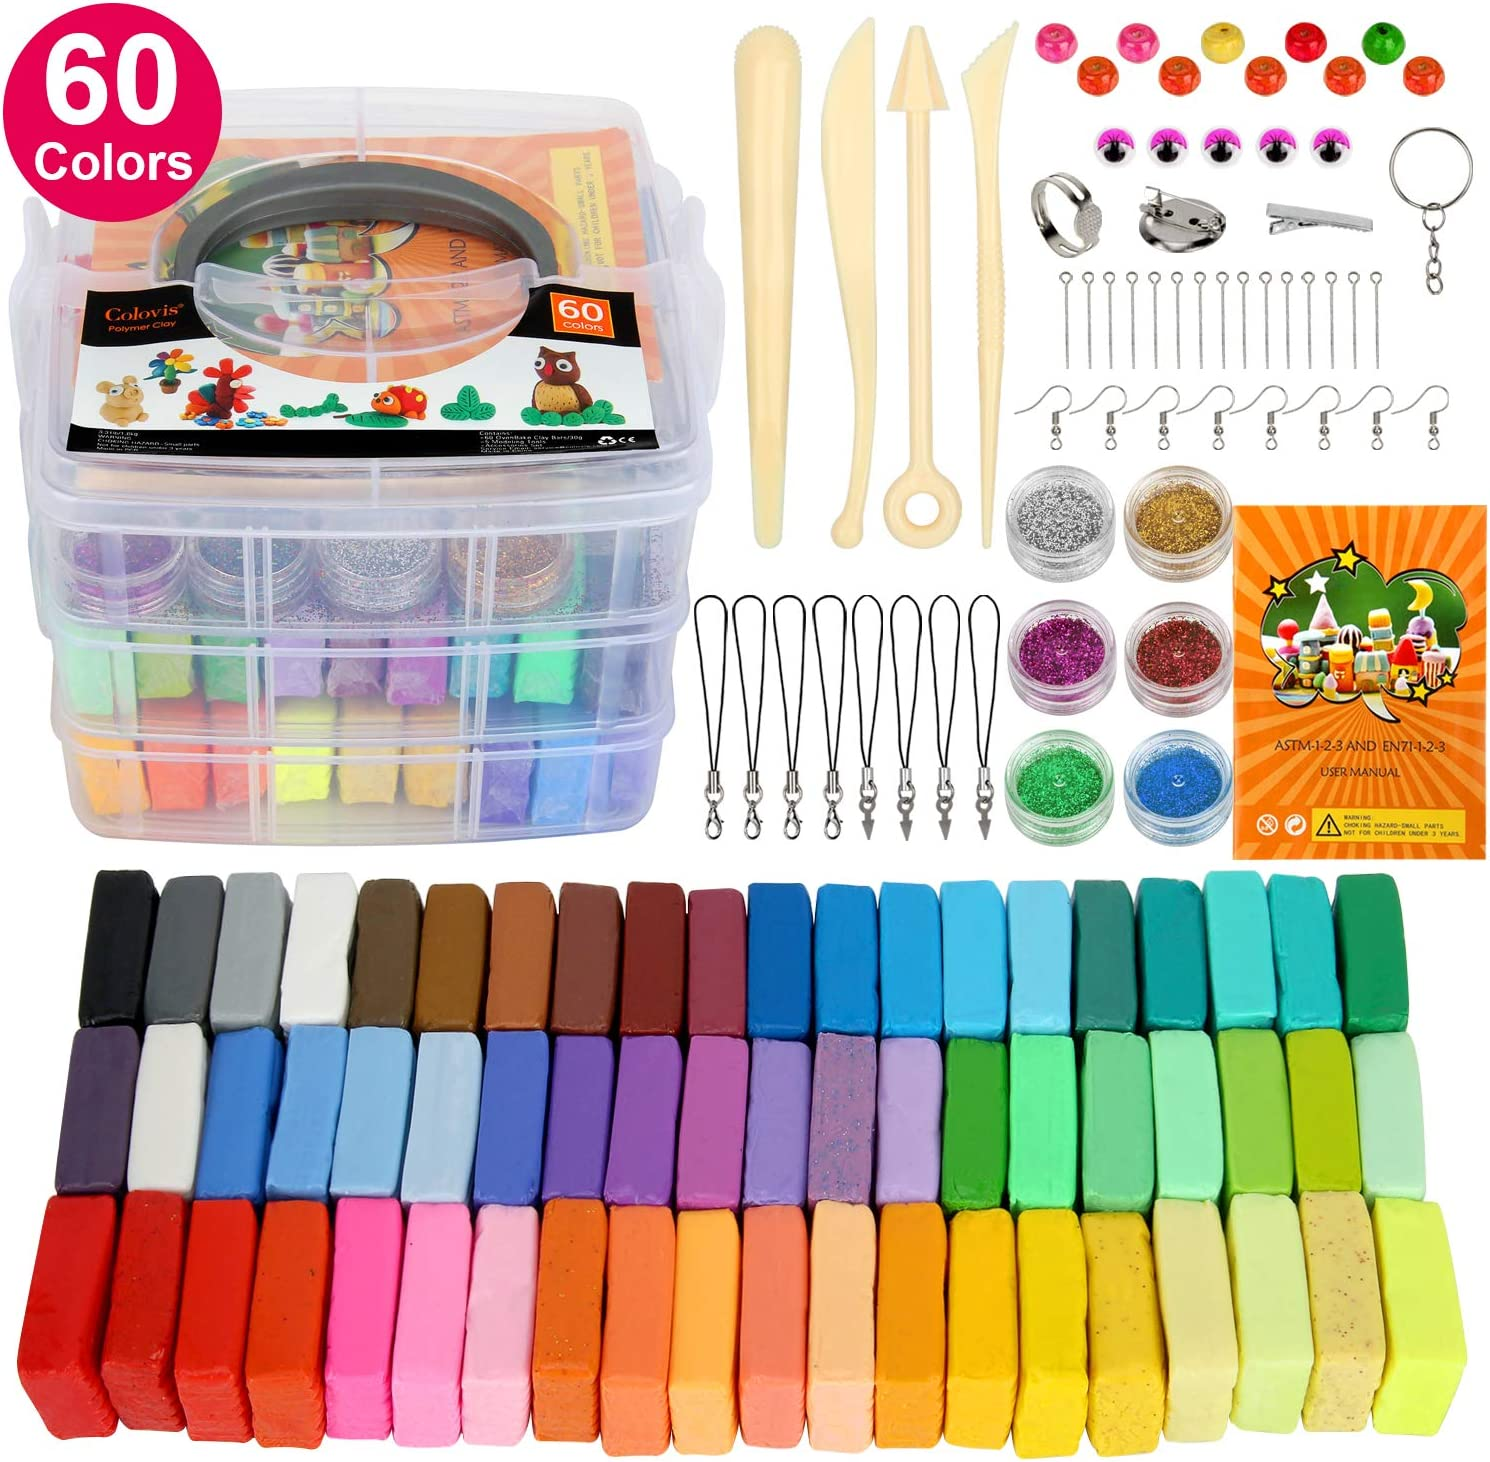 Polymer Clay,Colovis 60 Colors Oven Bake Clay,DIY Modeling Clay Kit with 5 Scuplting Tools, 6 Colors Mica Powder and Kinds of Accessories in Storage Box,Best Gift for Kids.